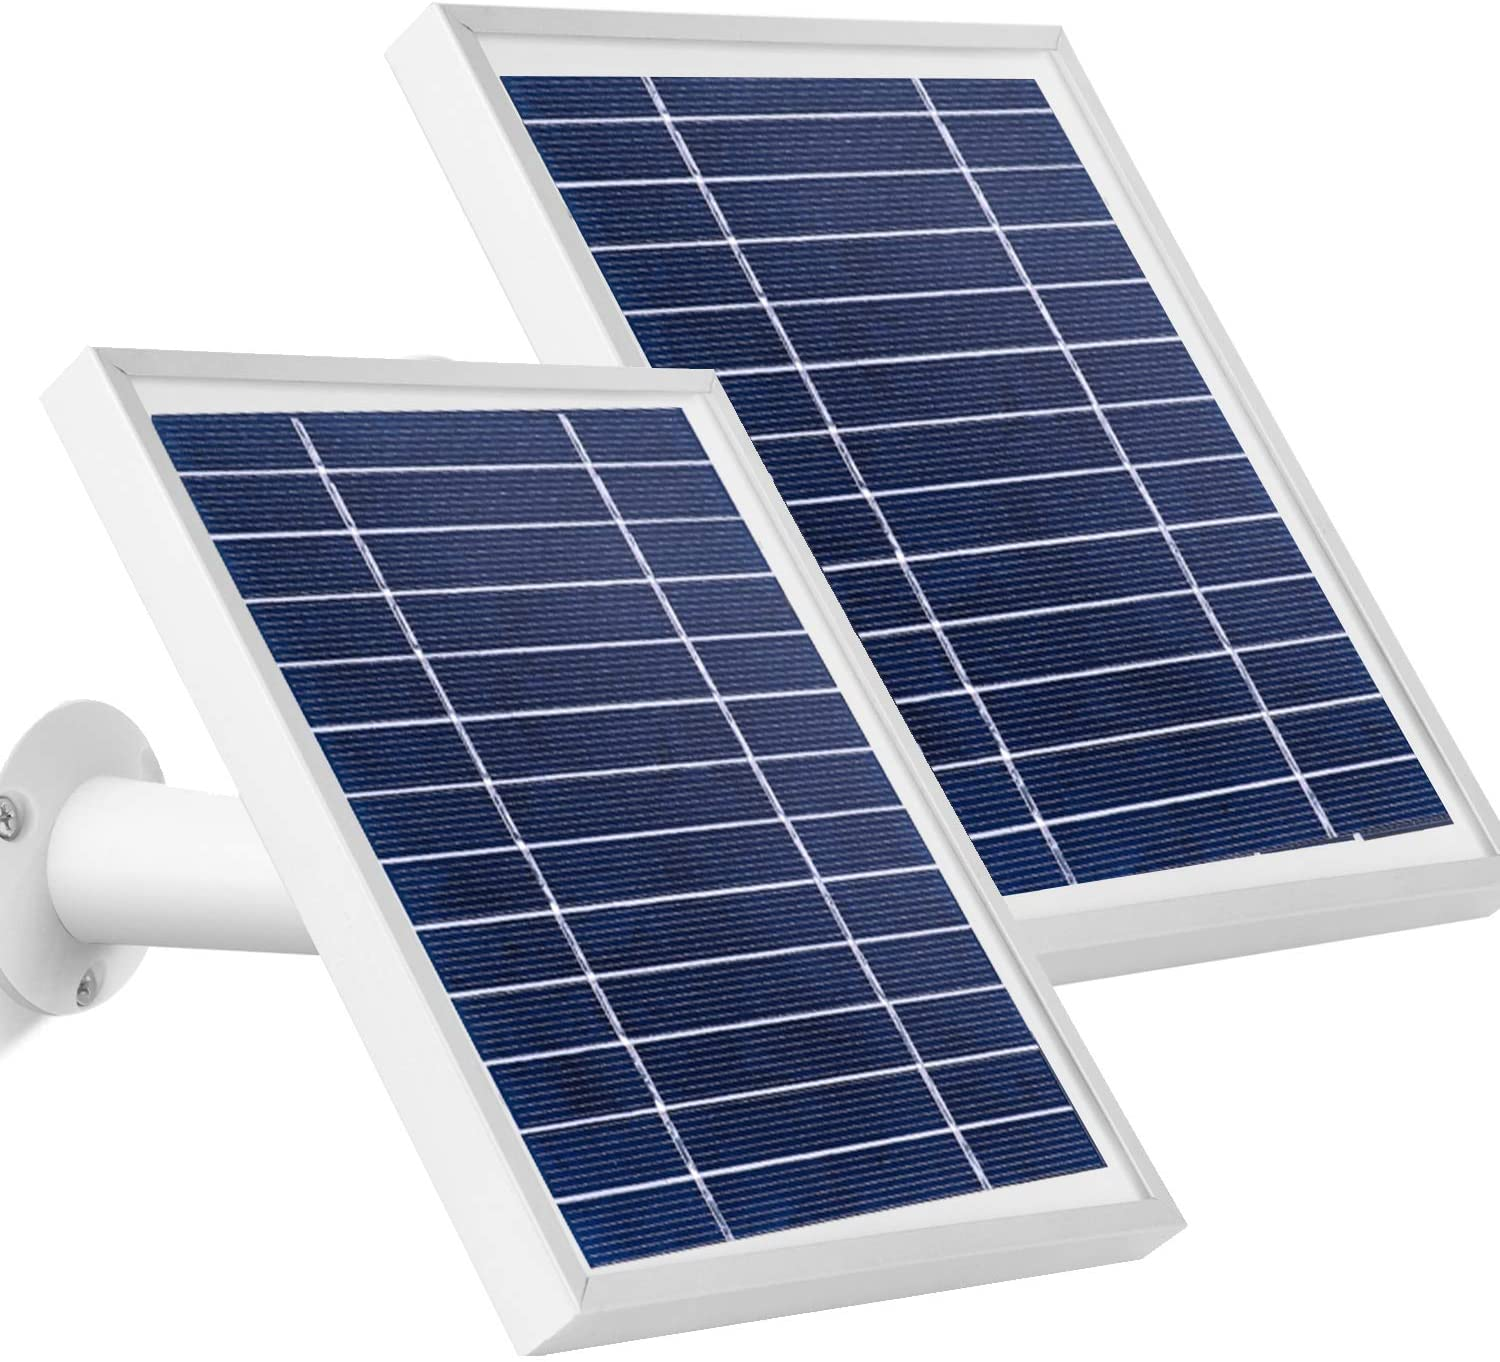 Uogw 2 Pack Solar Panel Compatible with Arlo Ultra &Pro 3, with 11.5ft Outdoor Magnetic Power Charging Cable, Adjustable Mount Waterproof Charge Continuously- Silver (NOT For Arlo Essential Spotlight)